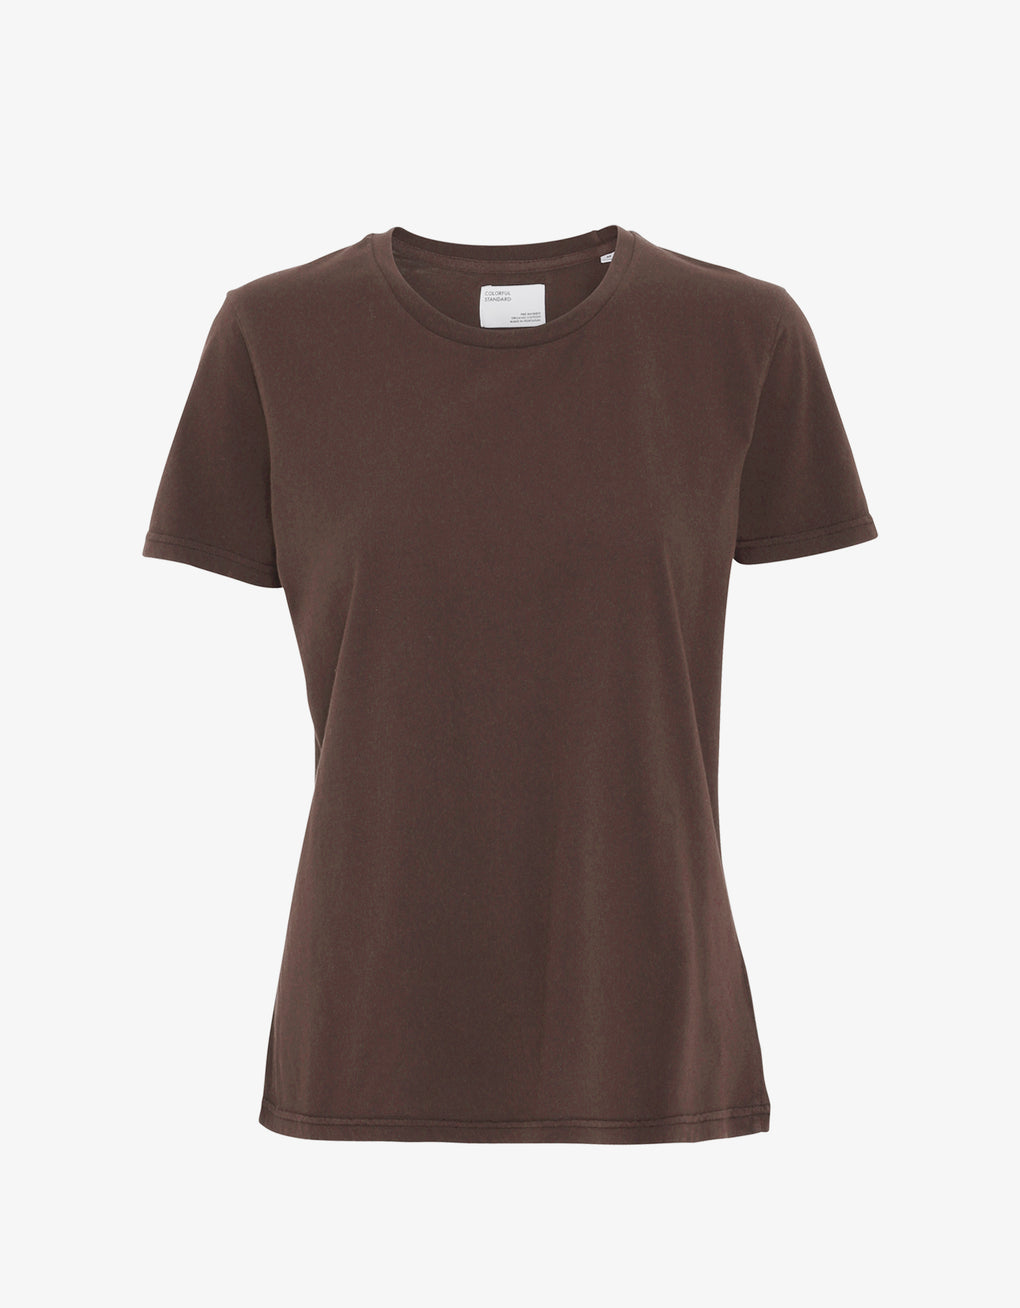 Colorful Standard Women Light Organic Tee Women T-shirt Coffee Brown